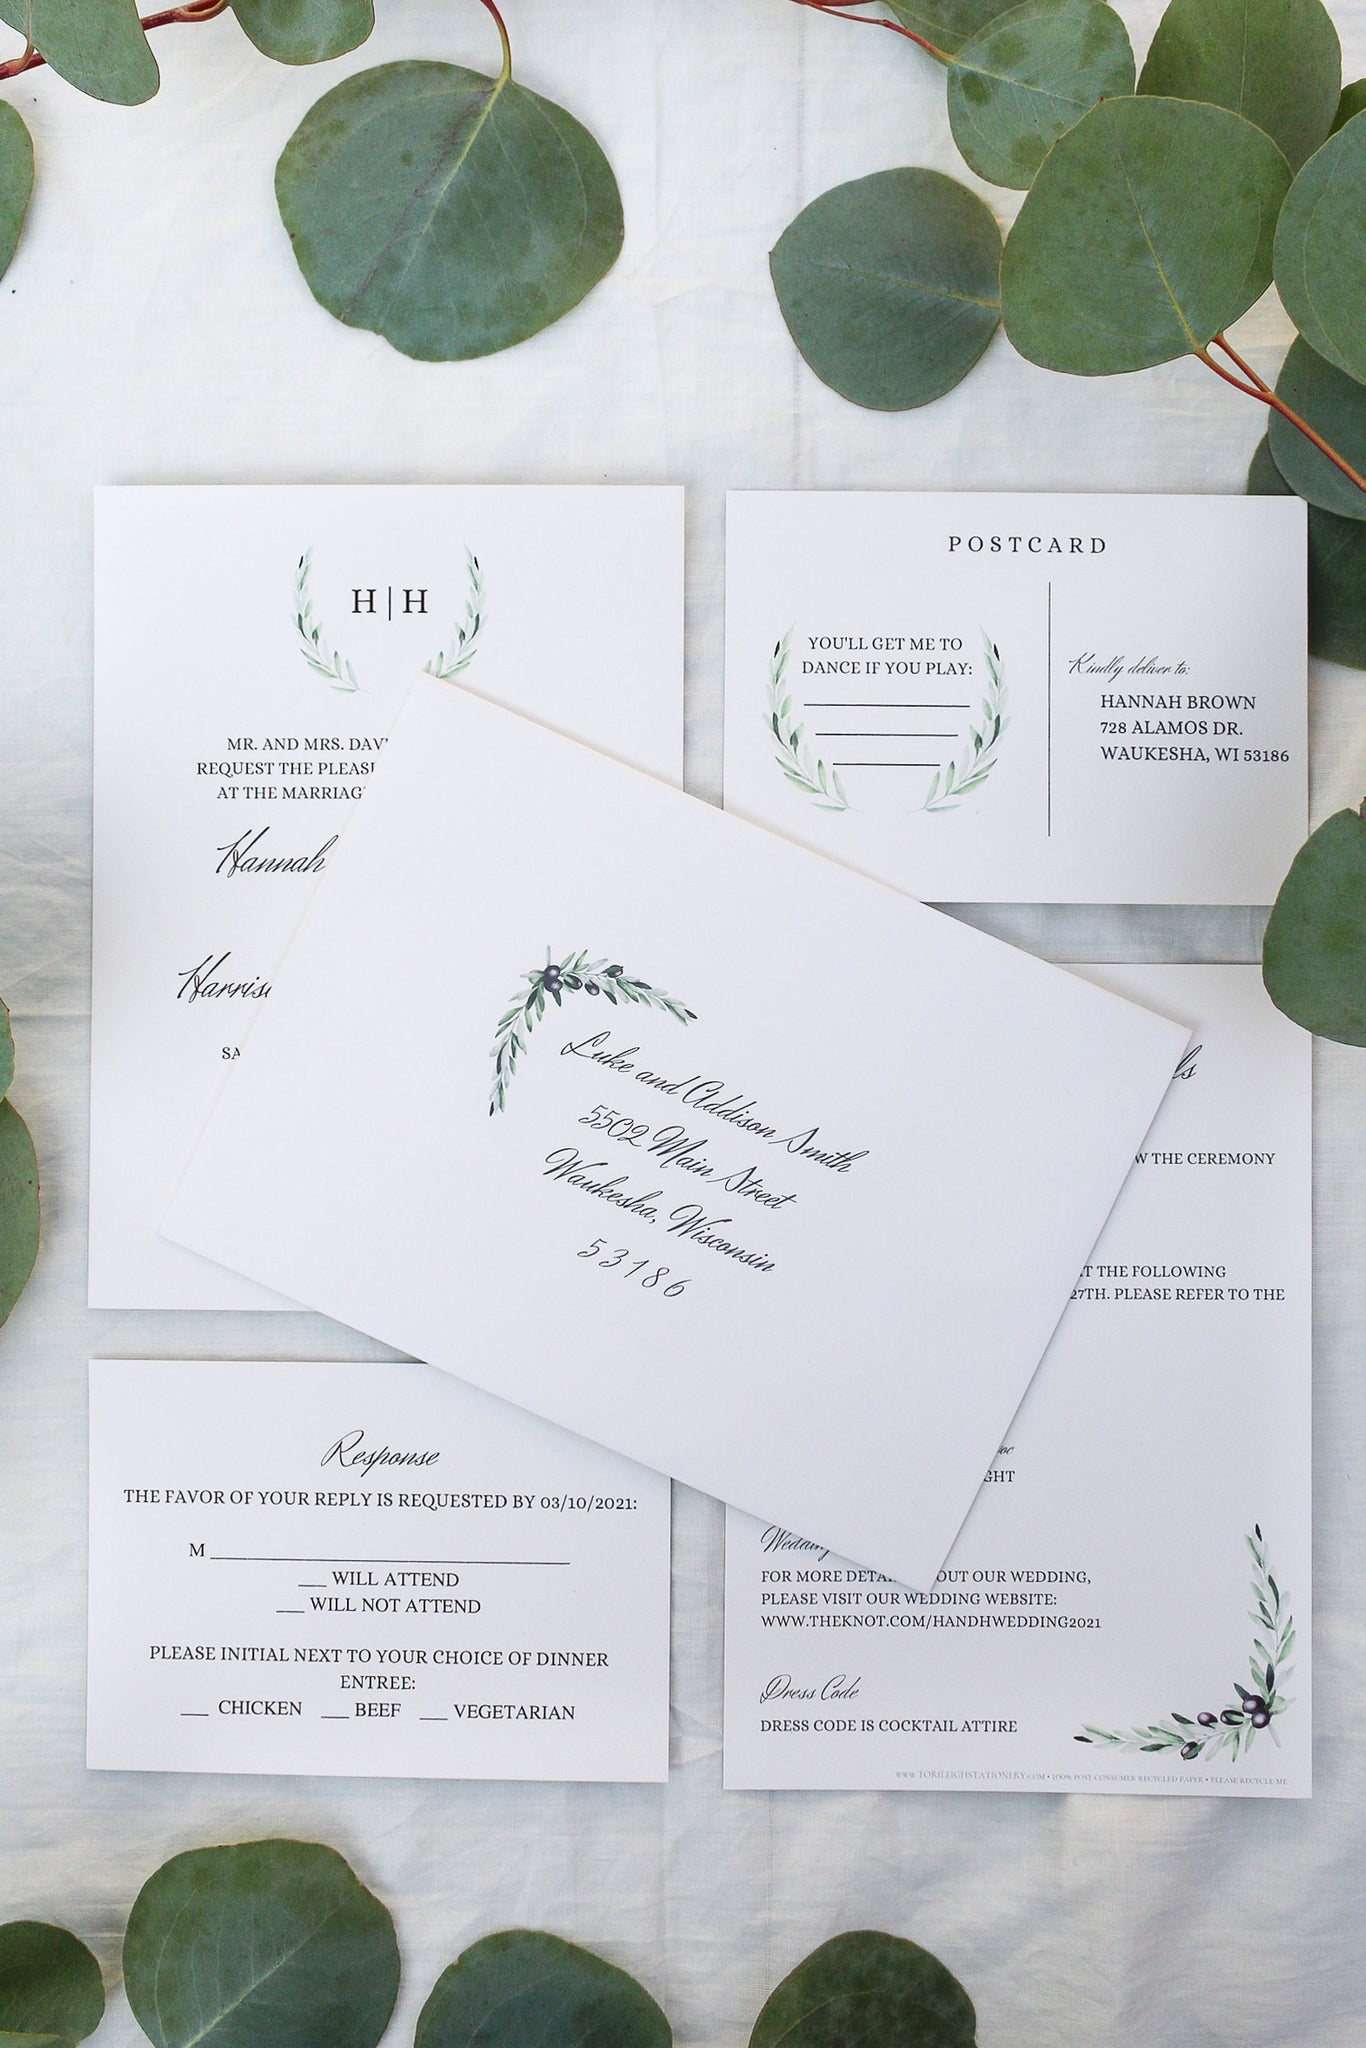 laurel wreath, olive branch, elegant calligraphy wedding invitations sustainably printed on 100% recycled paper envelope